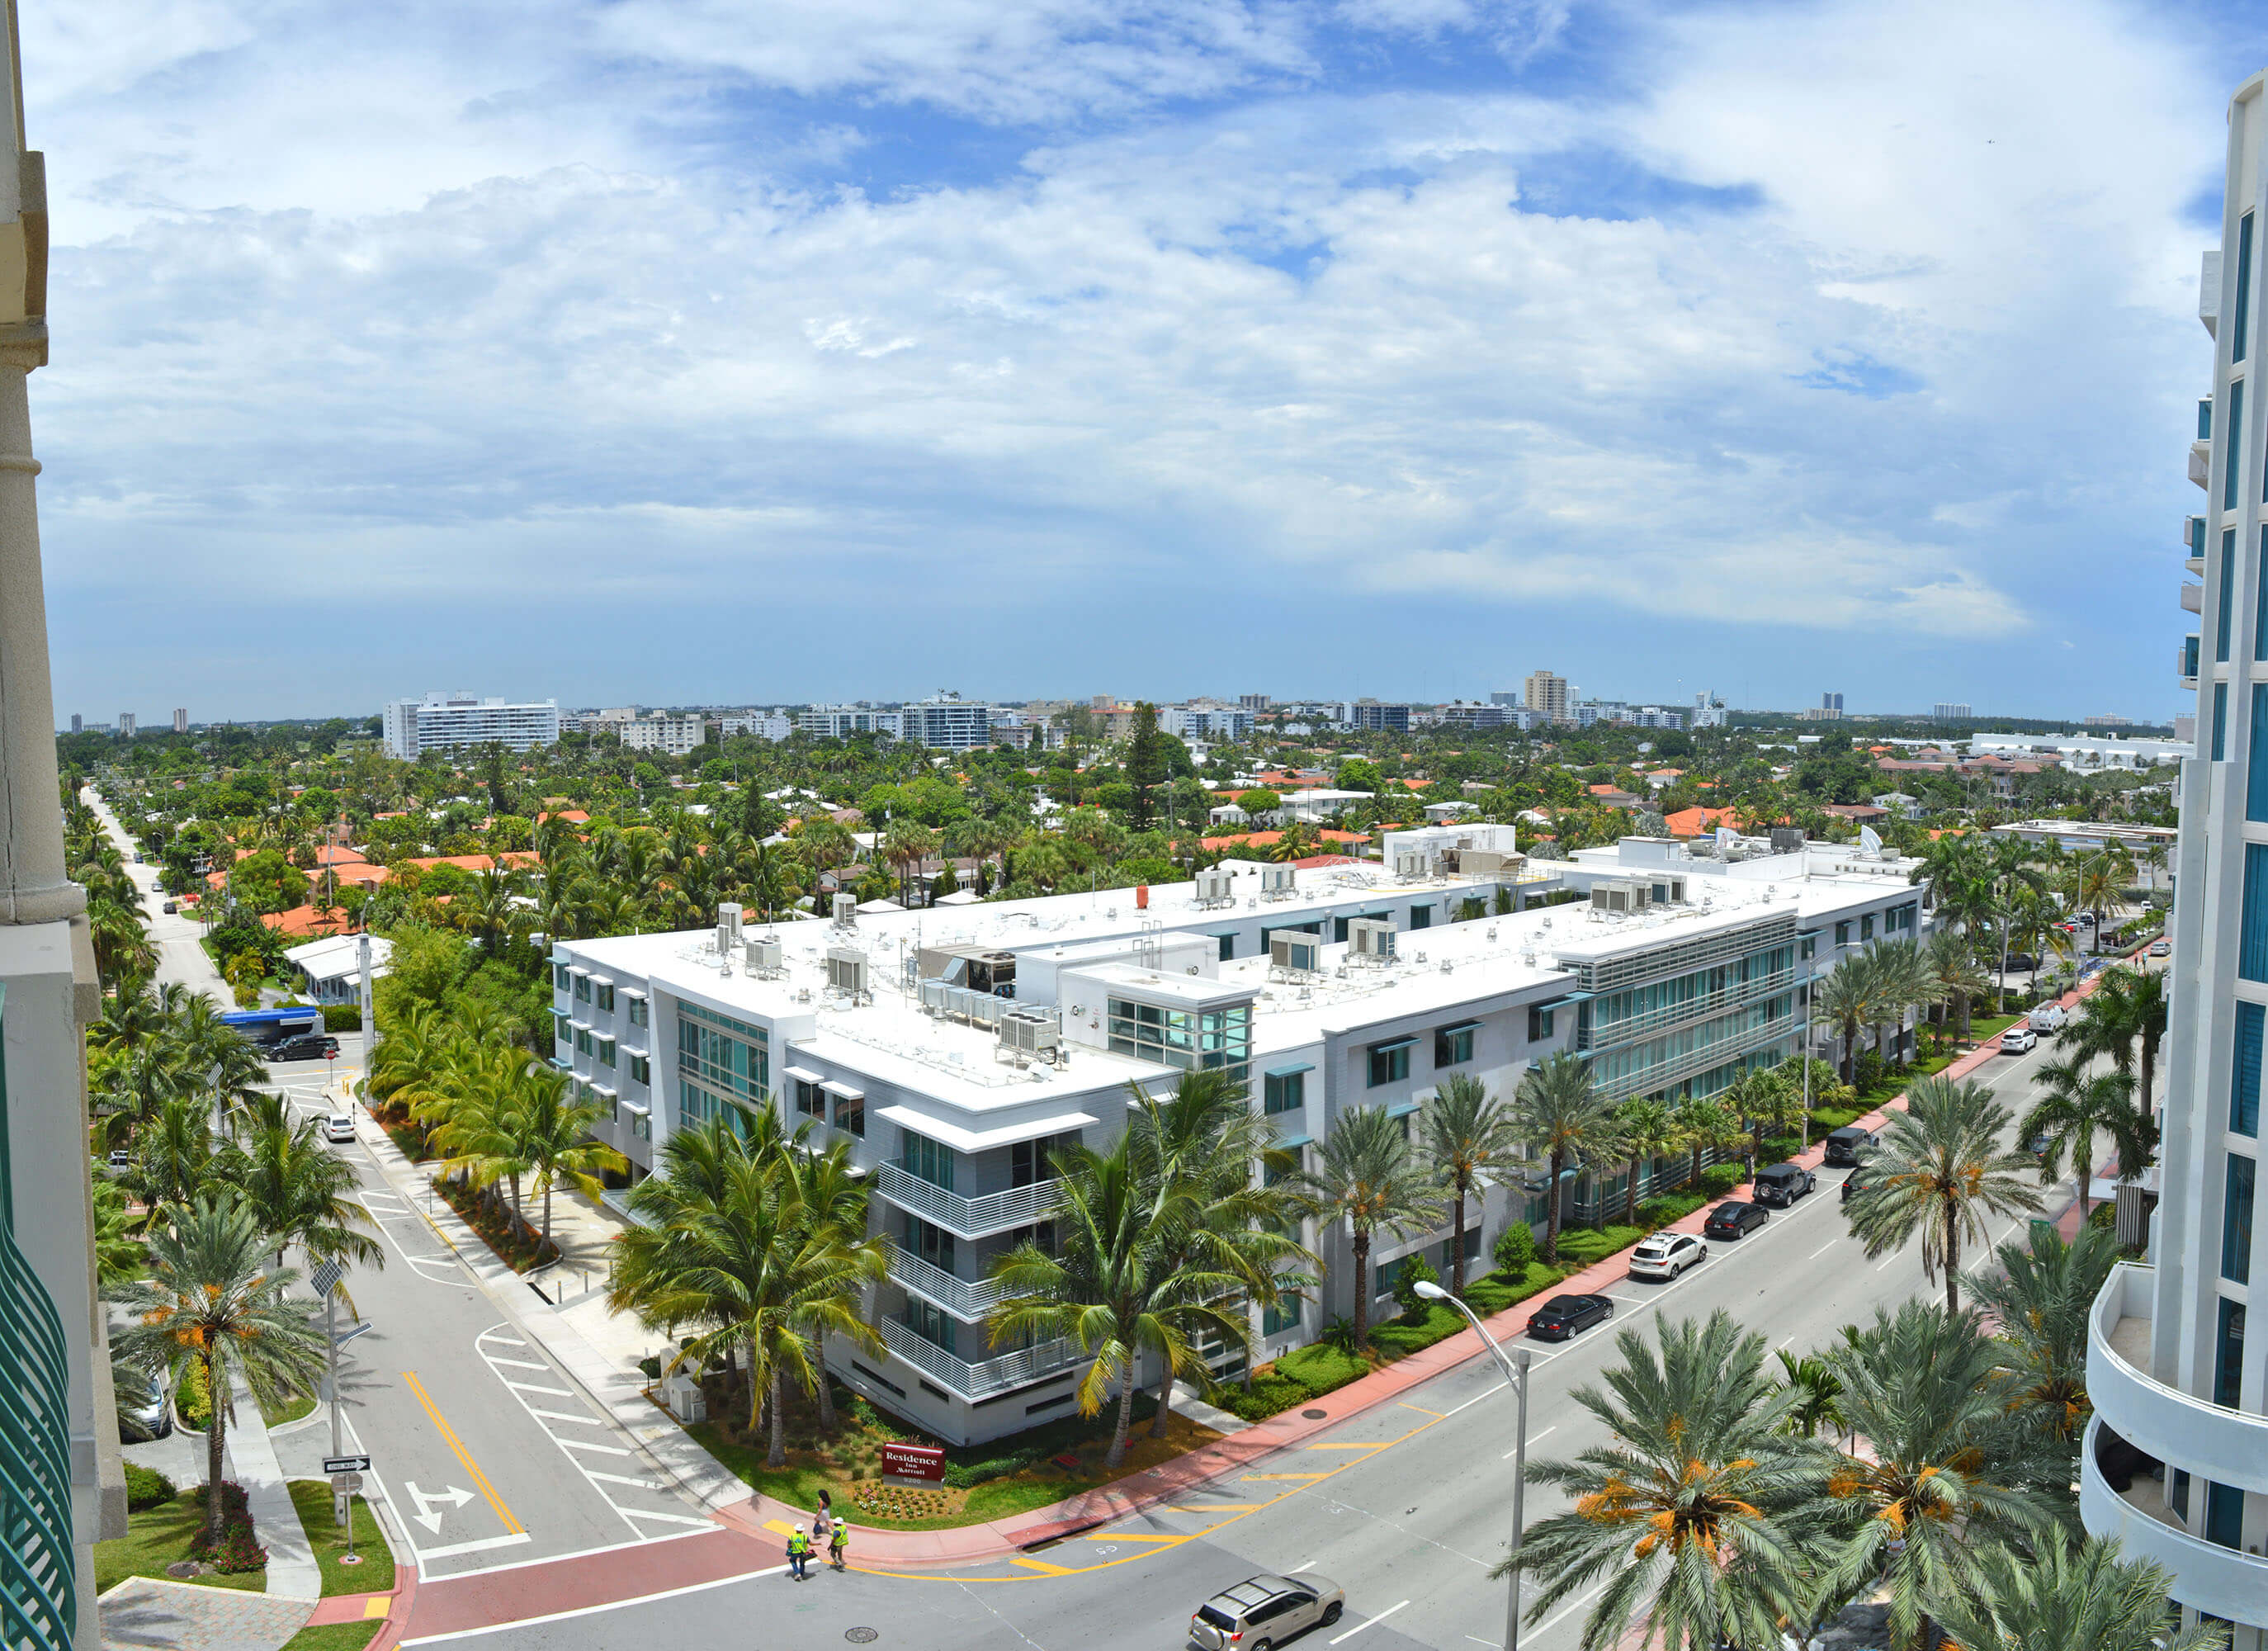 9195 Collins Avenue, Unit 1013 Surfside FL 33154 - West View